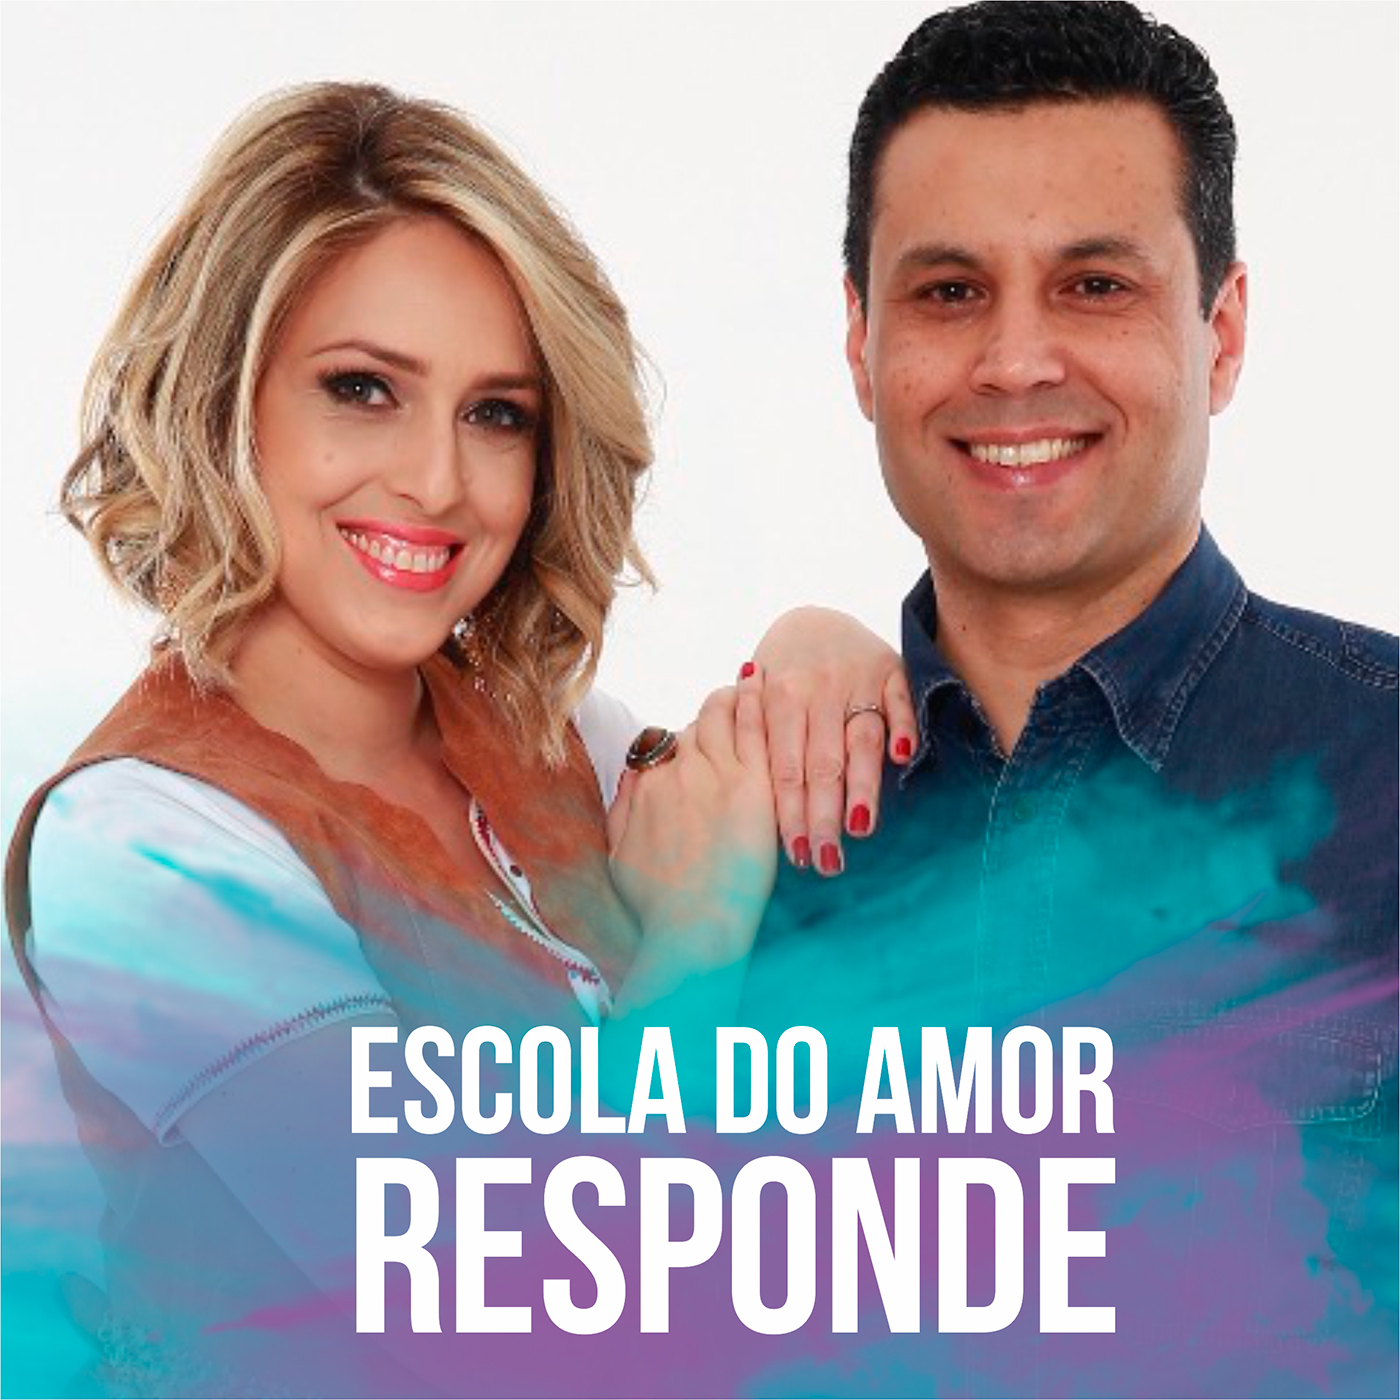 923# Escola do Amor Responde (no ar 27/02/2017)